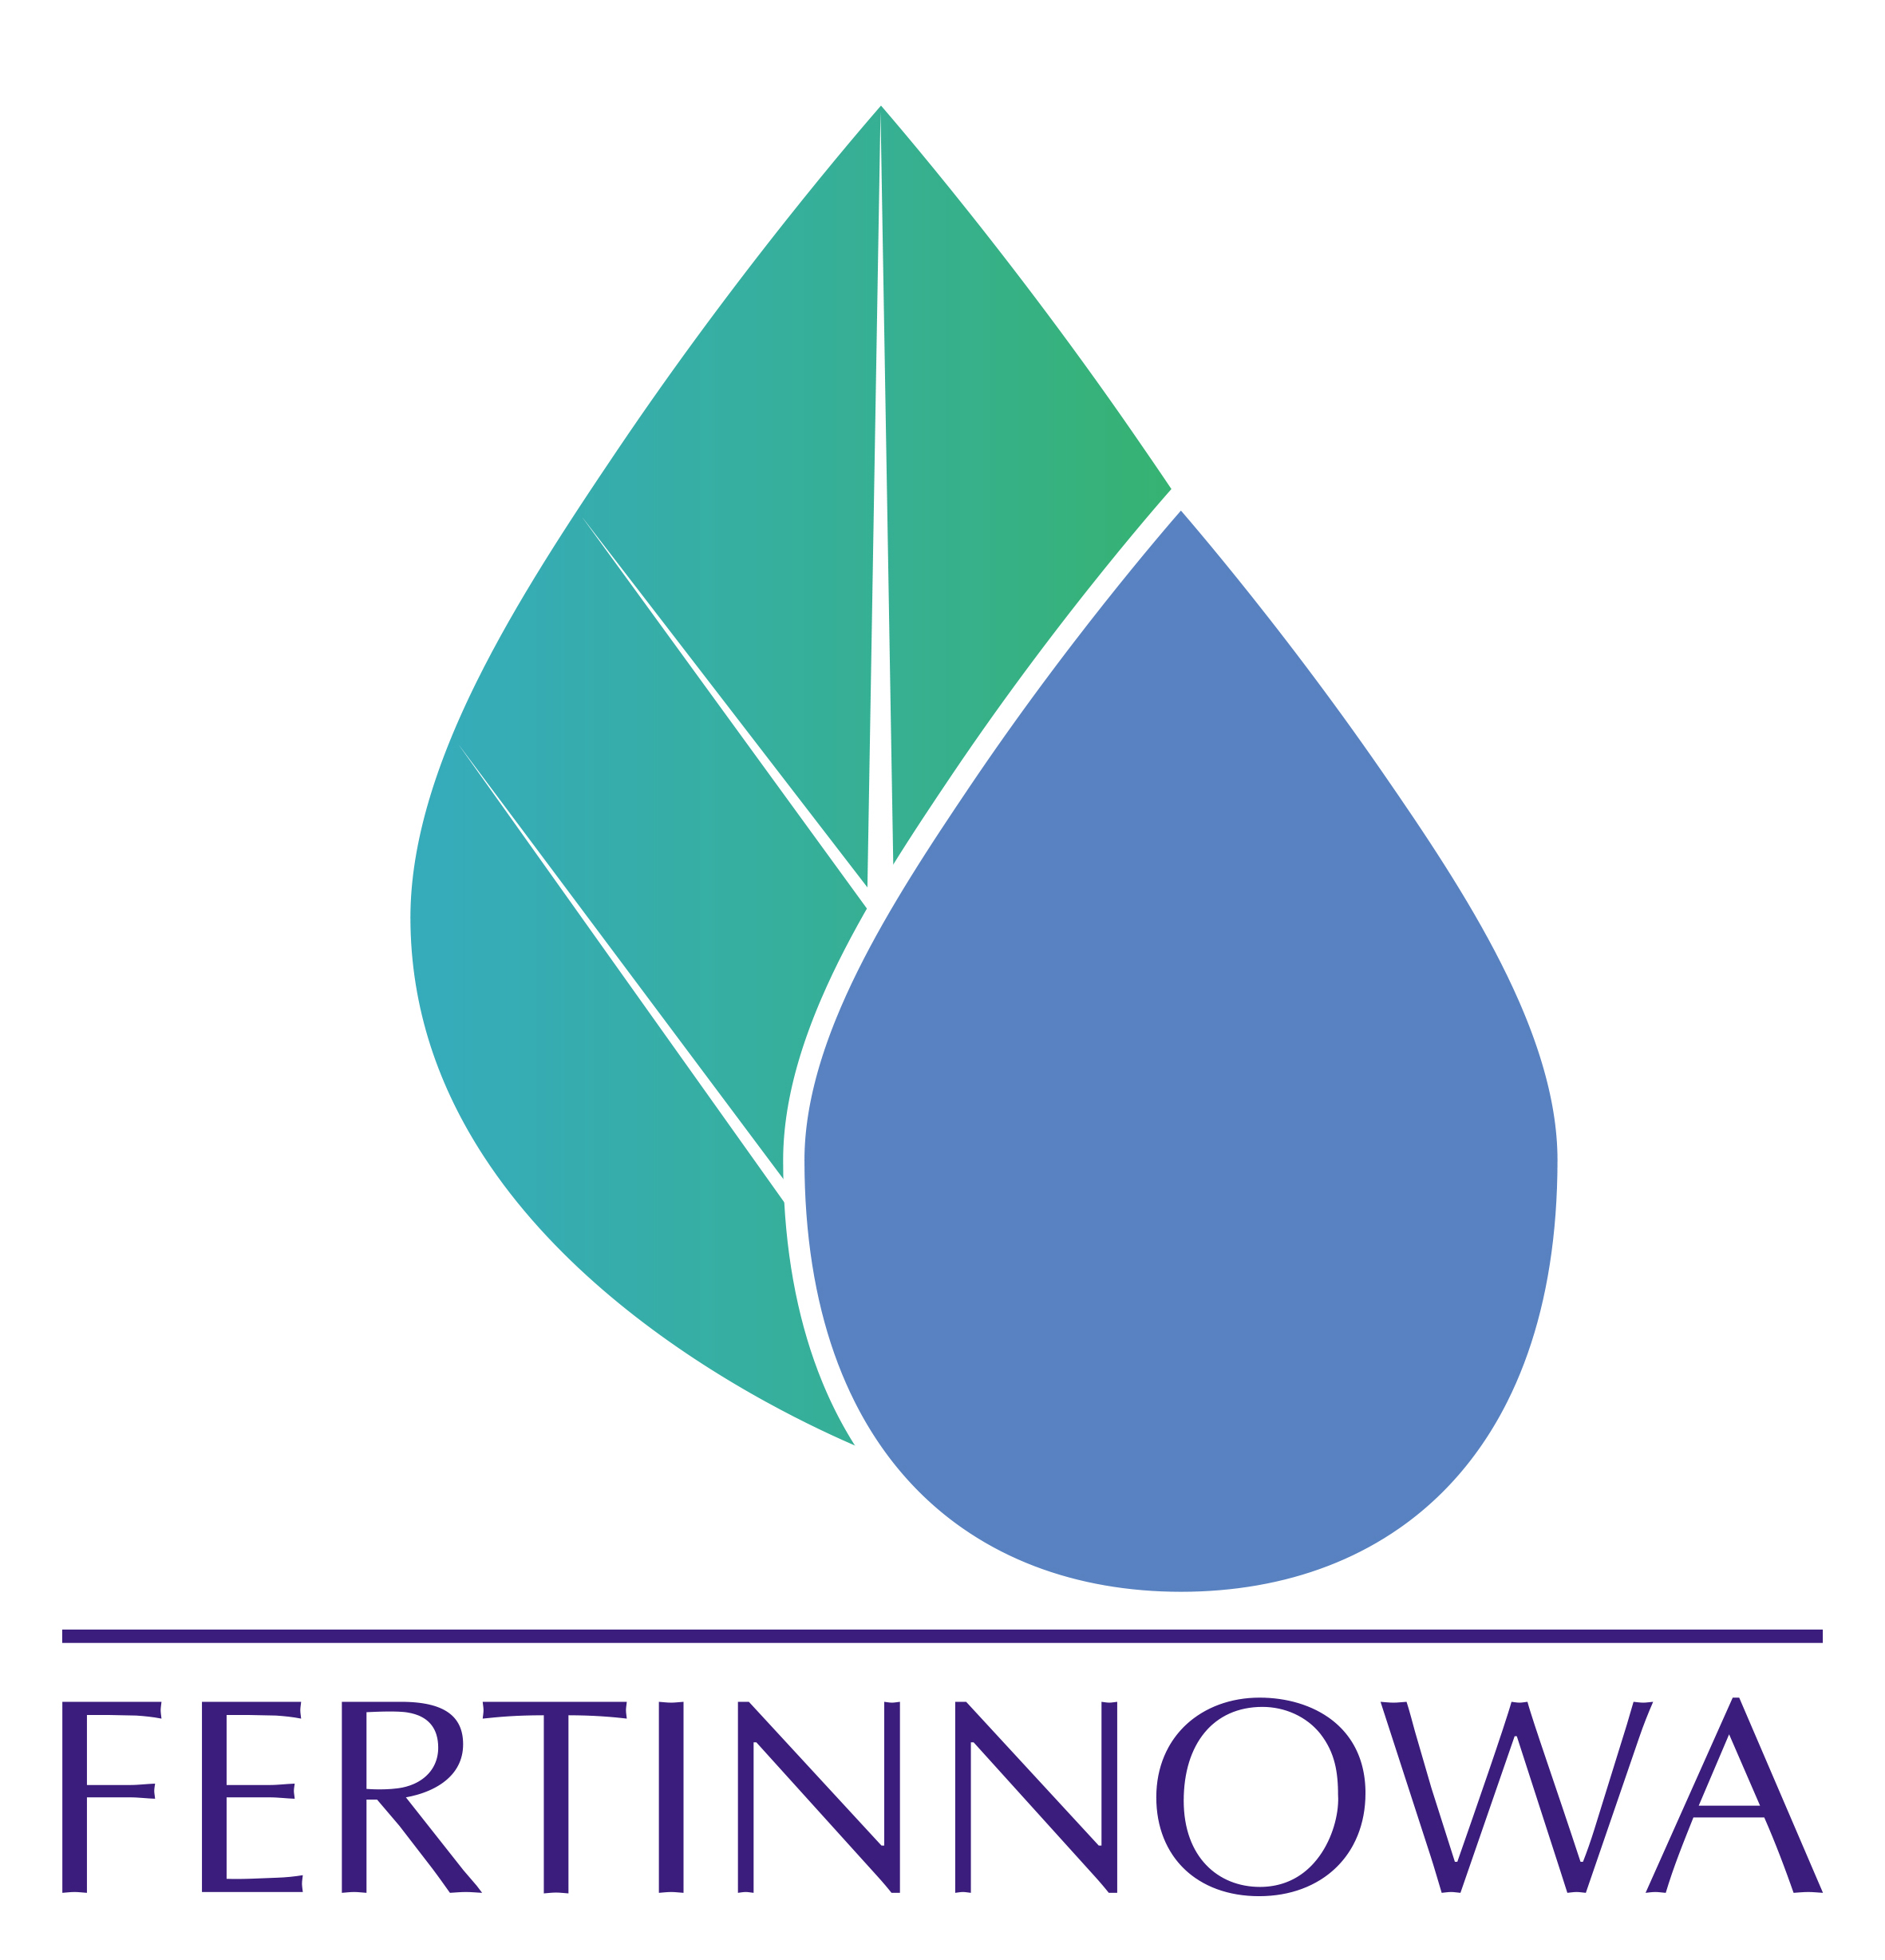 FERTINNOWA logo